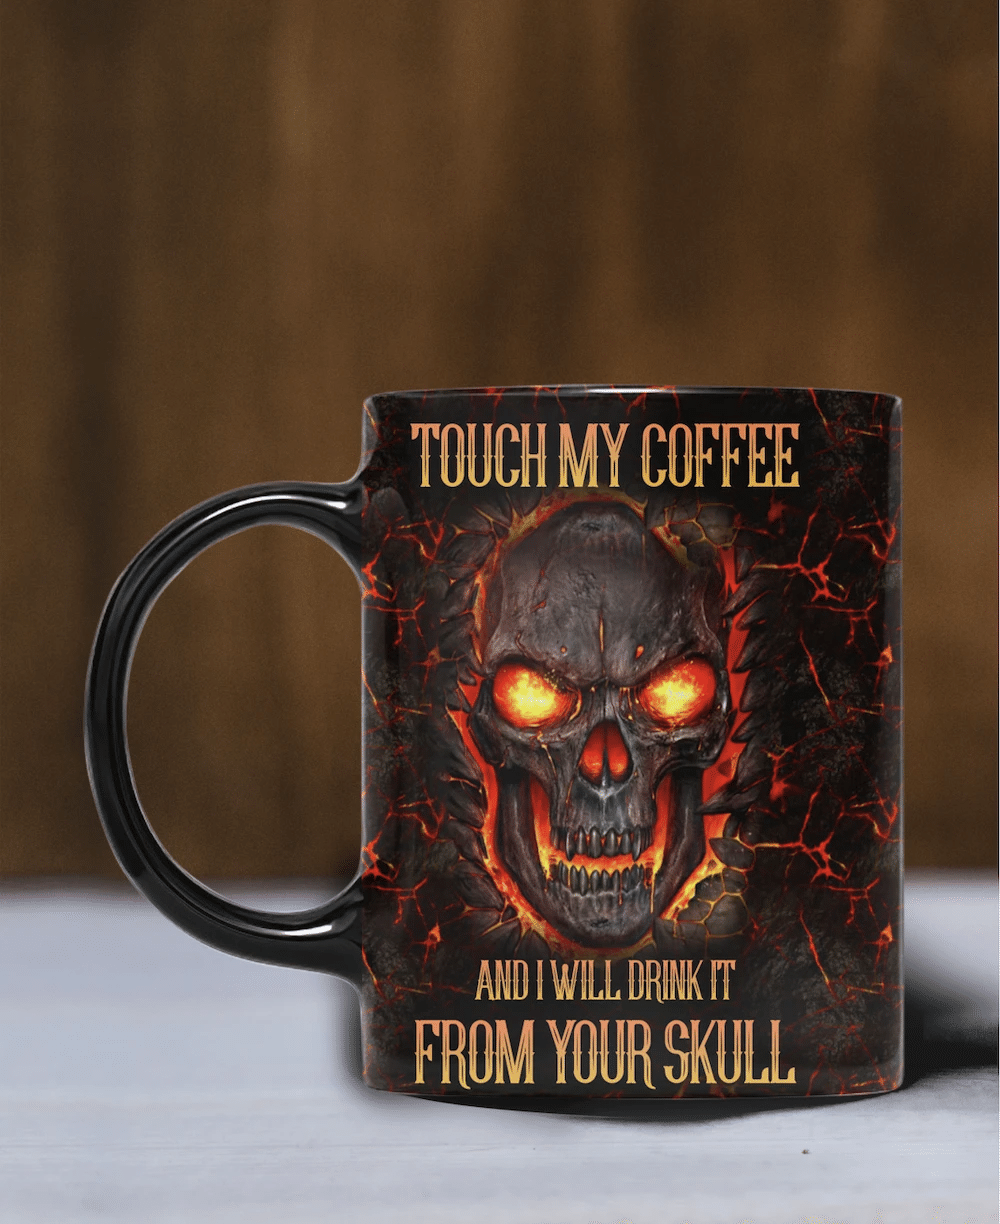 Touch My Coffee And I Will Drink I From Your Skull Cup